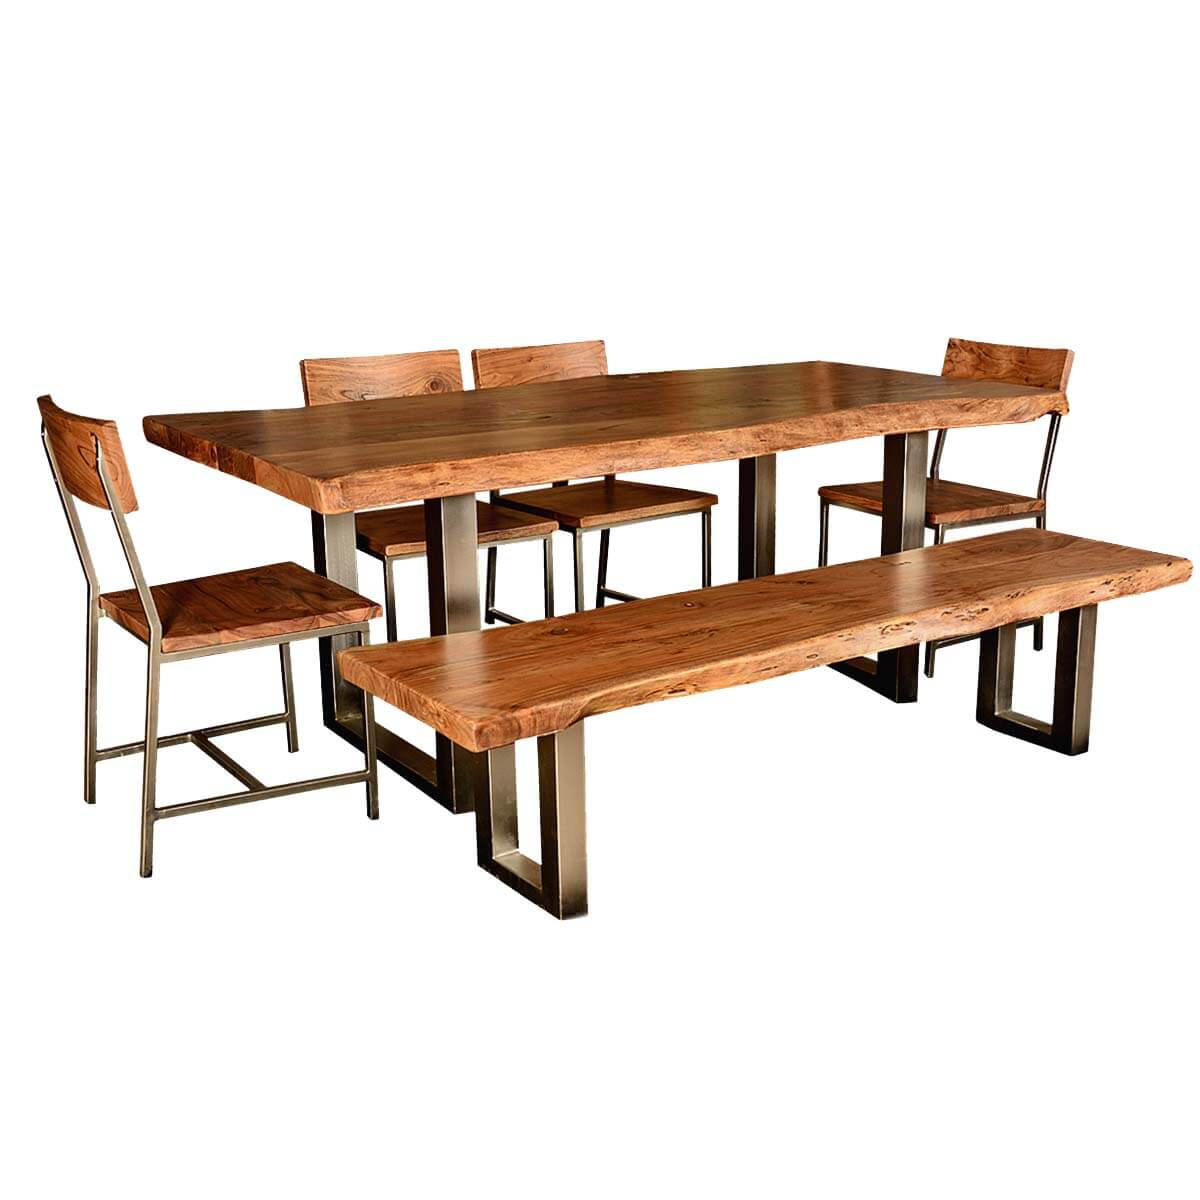 modern rustic live edge dining table chair set with live edge bench. Black Bedroom Furniture Sets. Home Design Ideas